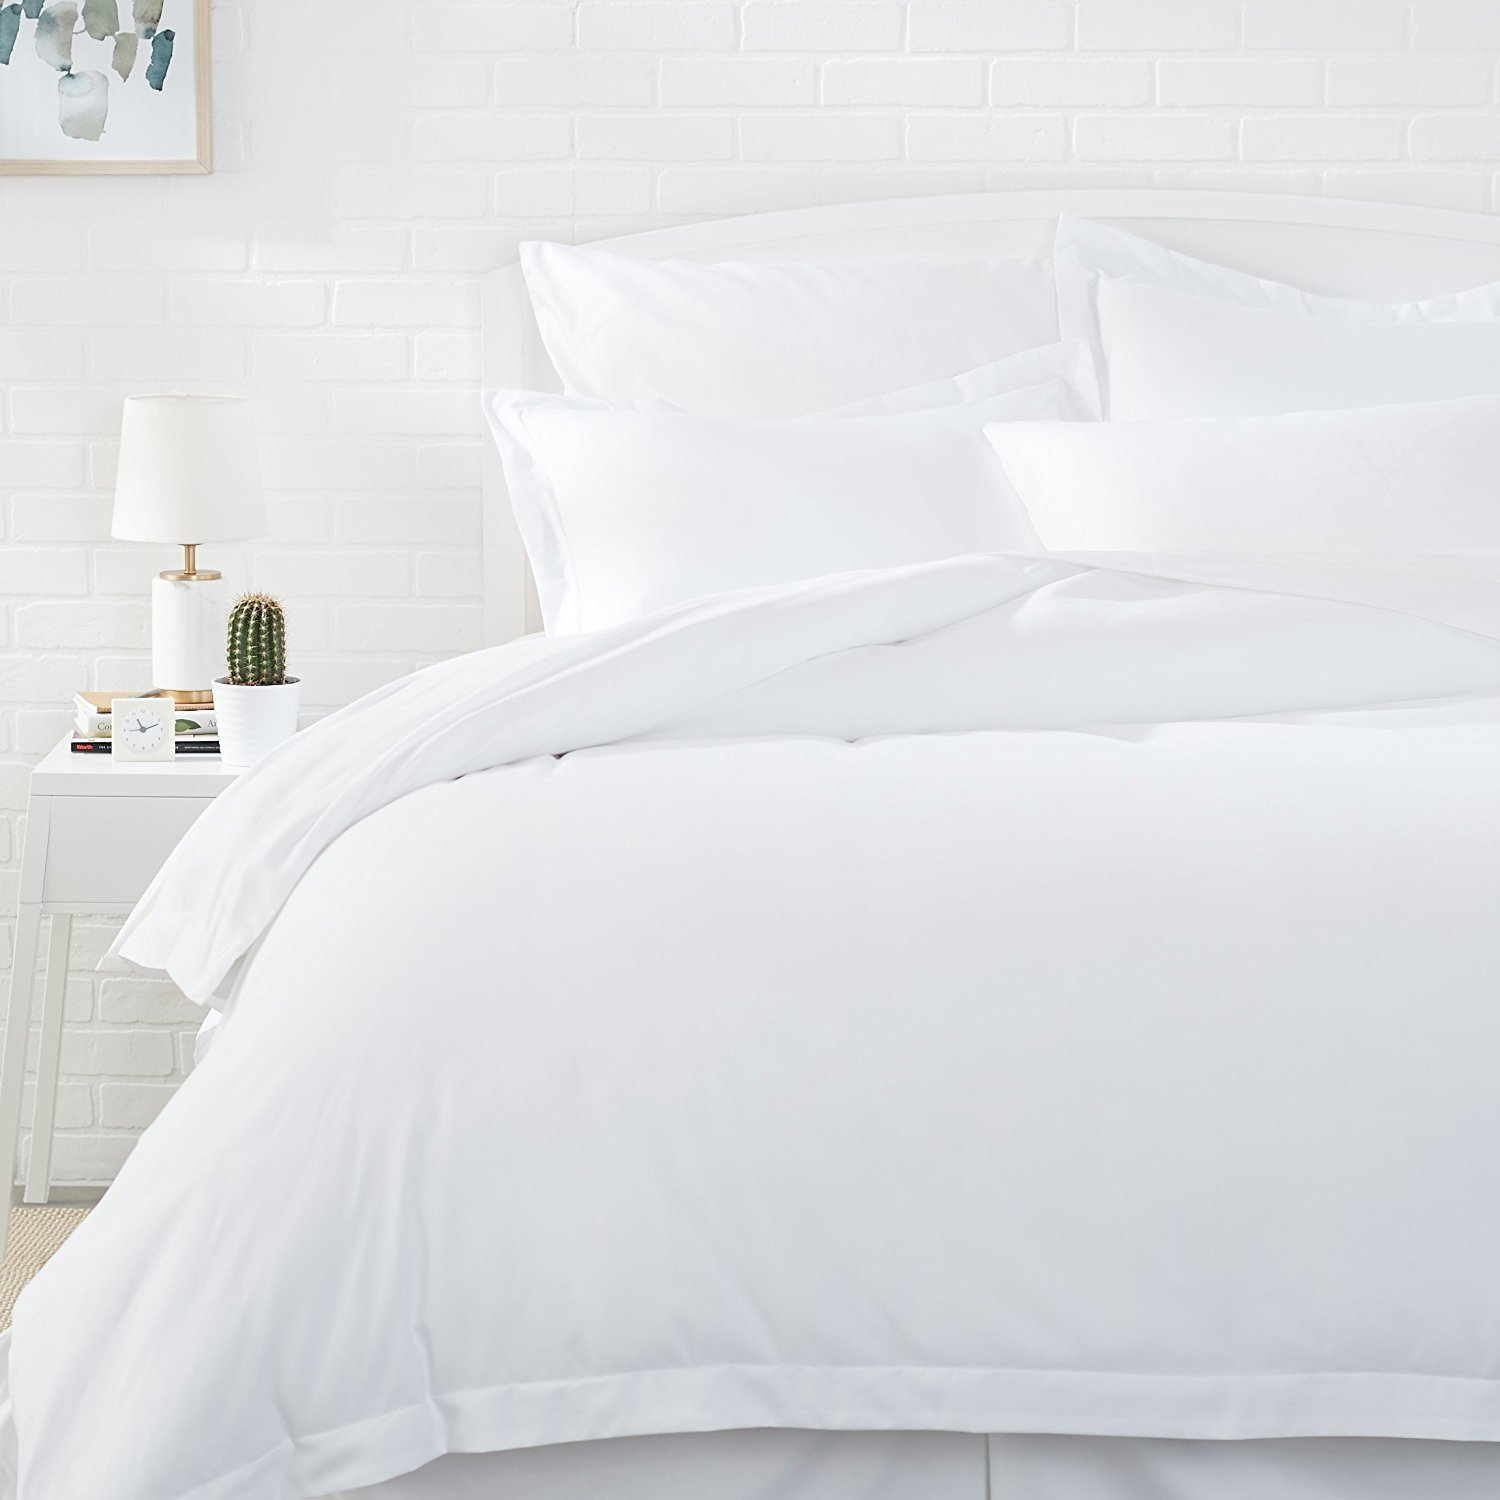 Inhabitr Basic Comforter Cover.jpg